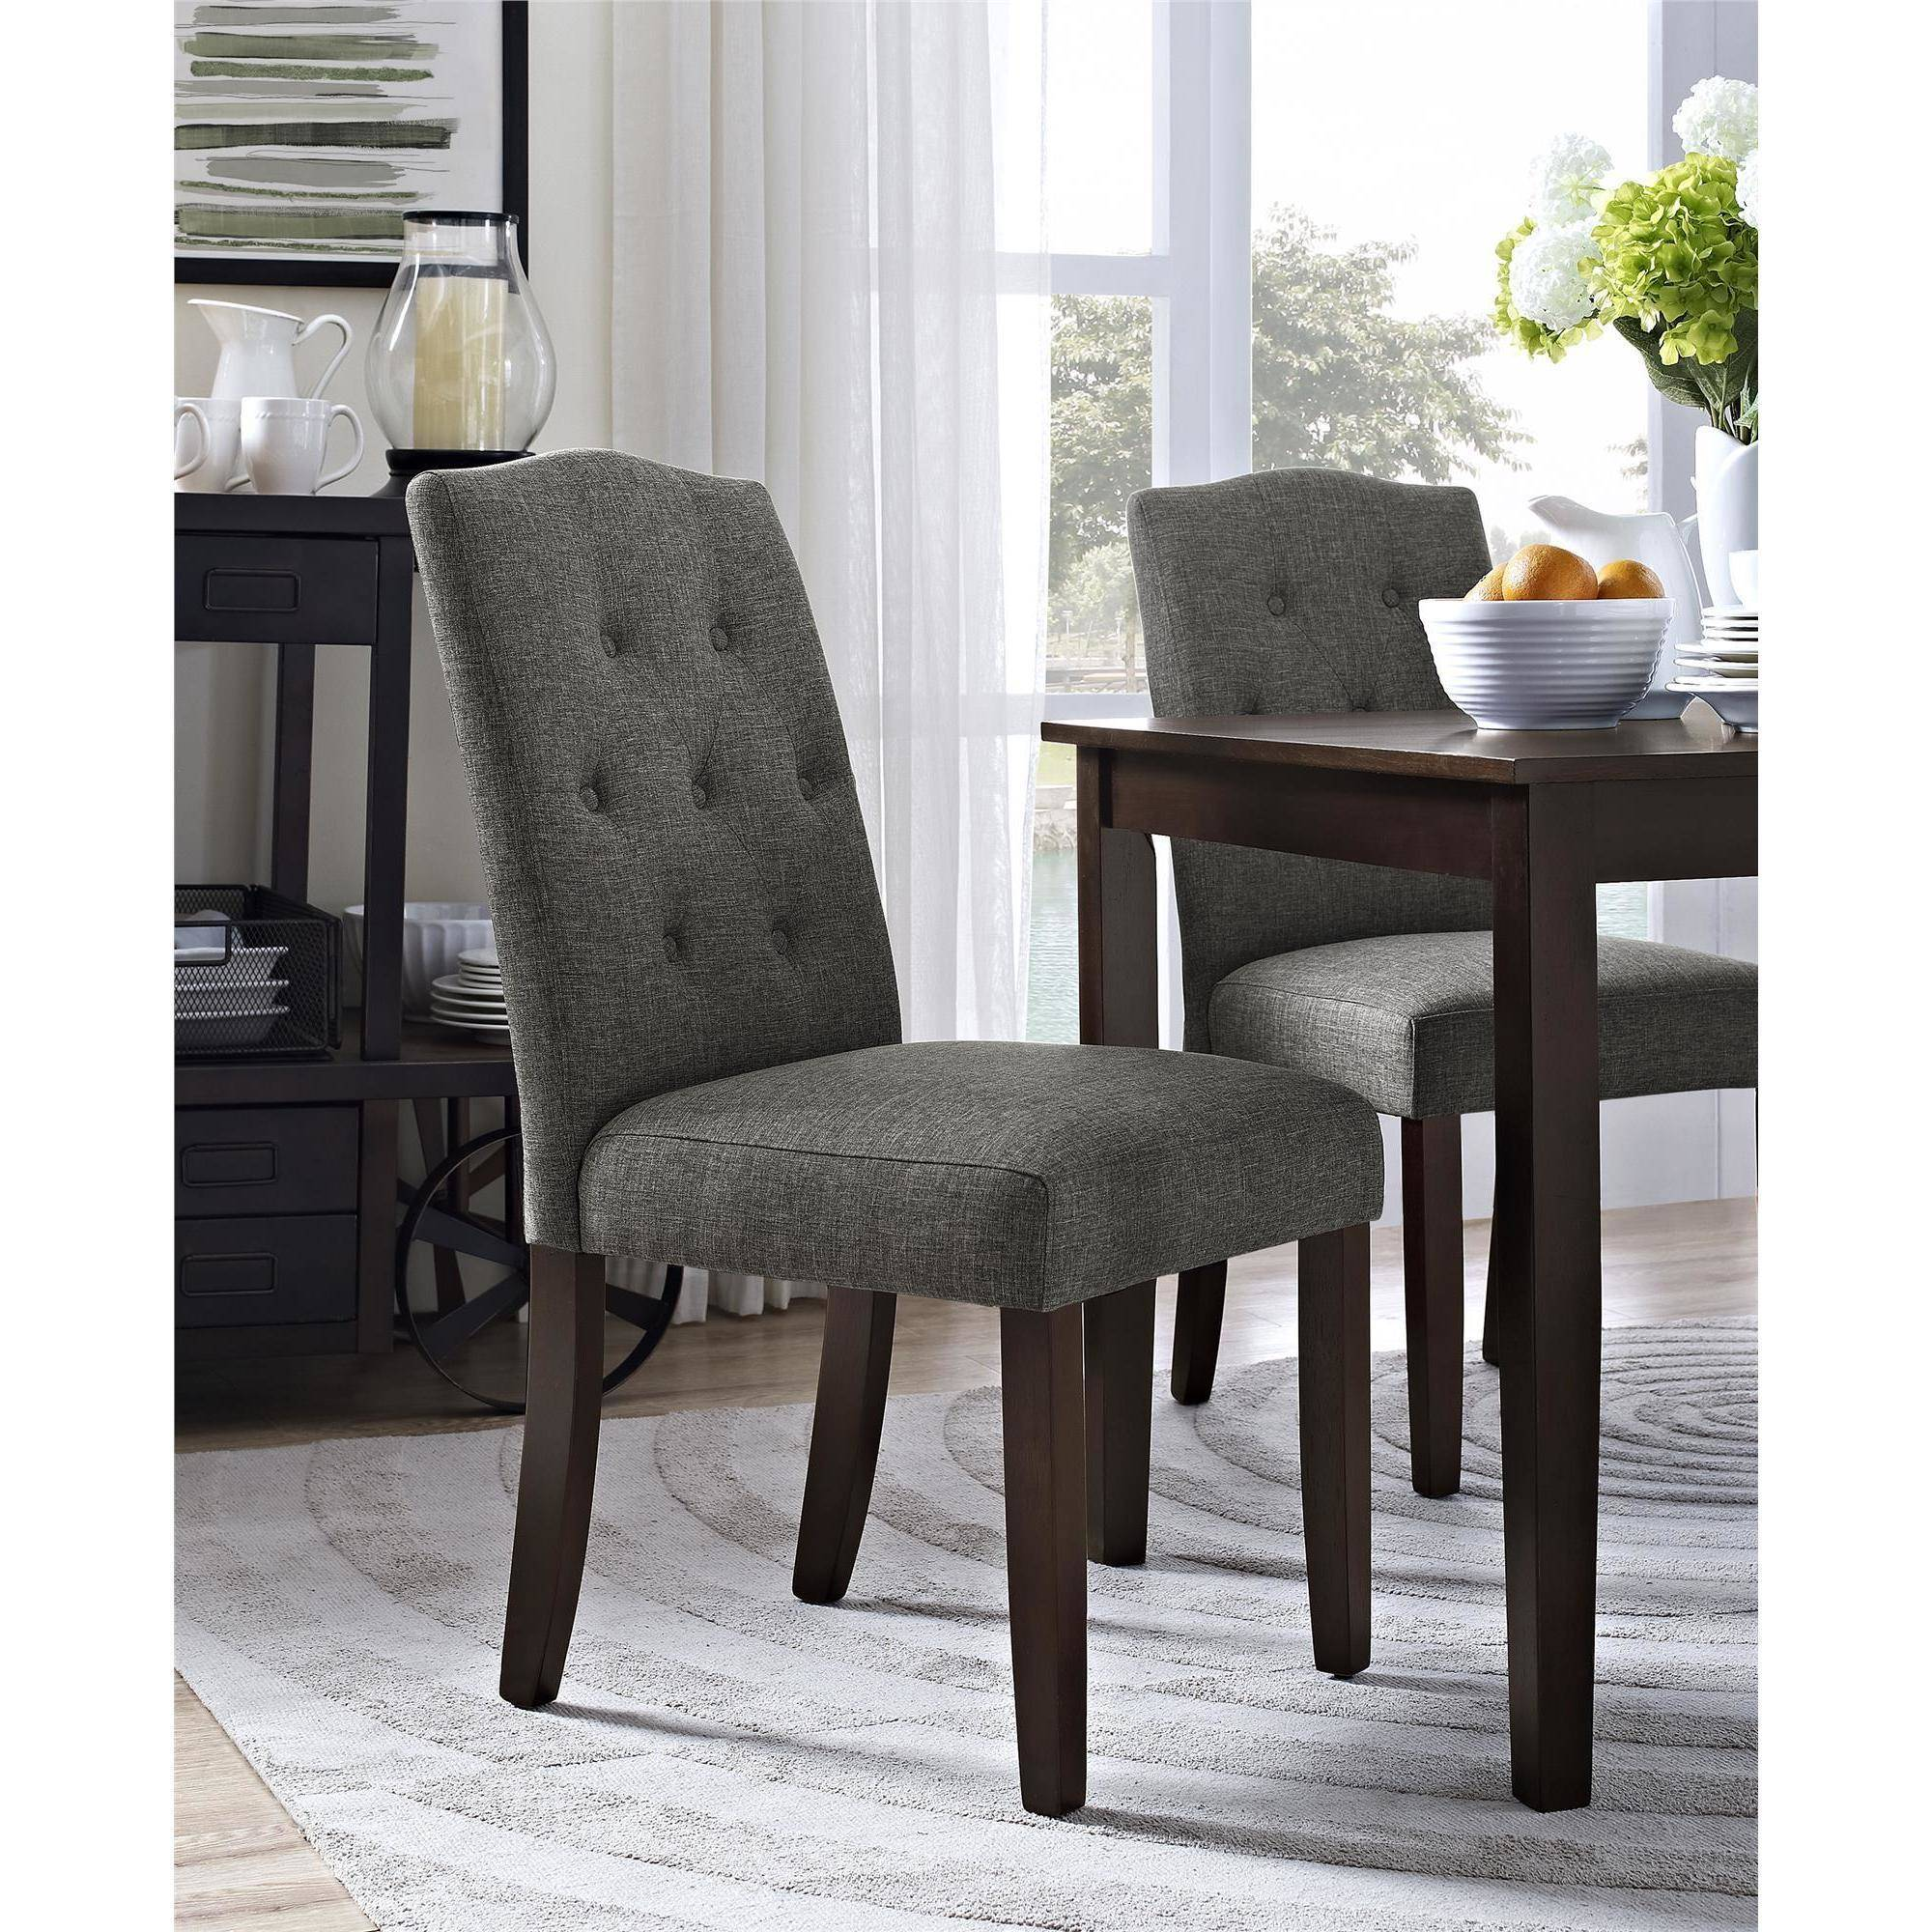 Better Homes and Gardens Parsons Tufted Dining Chair, Gray